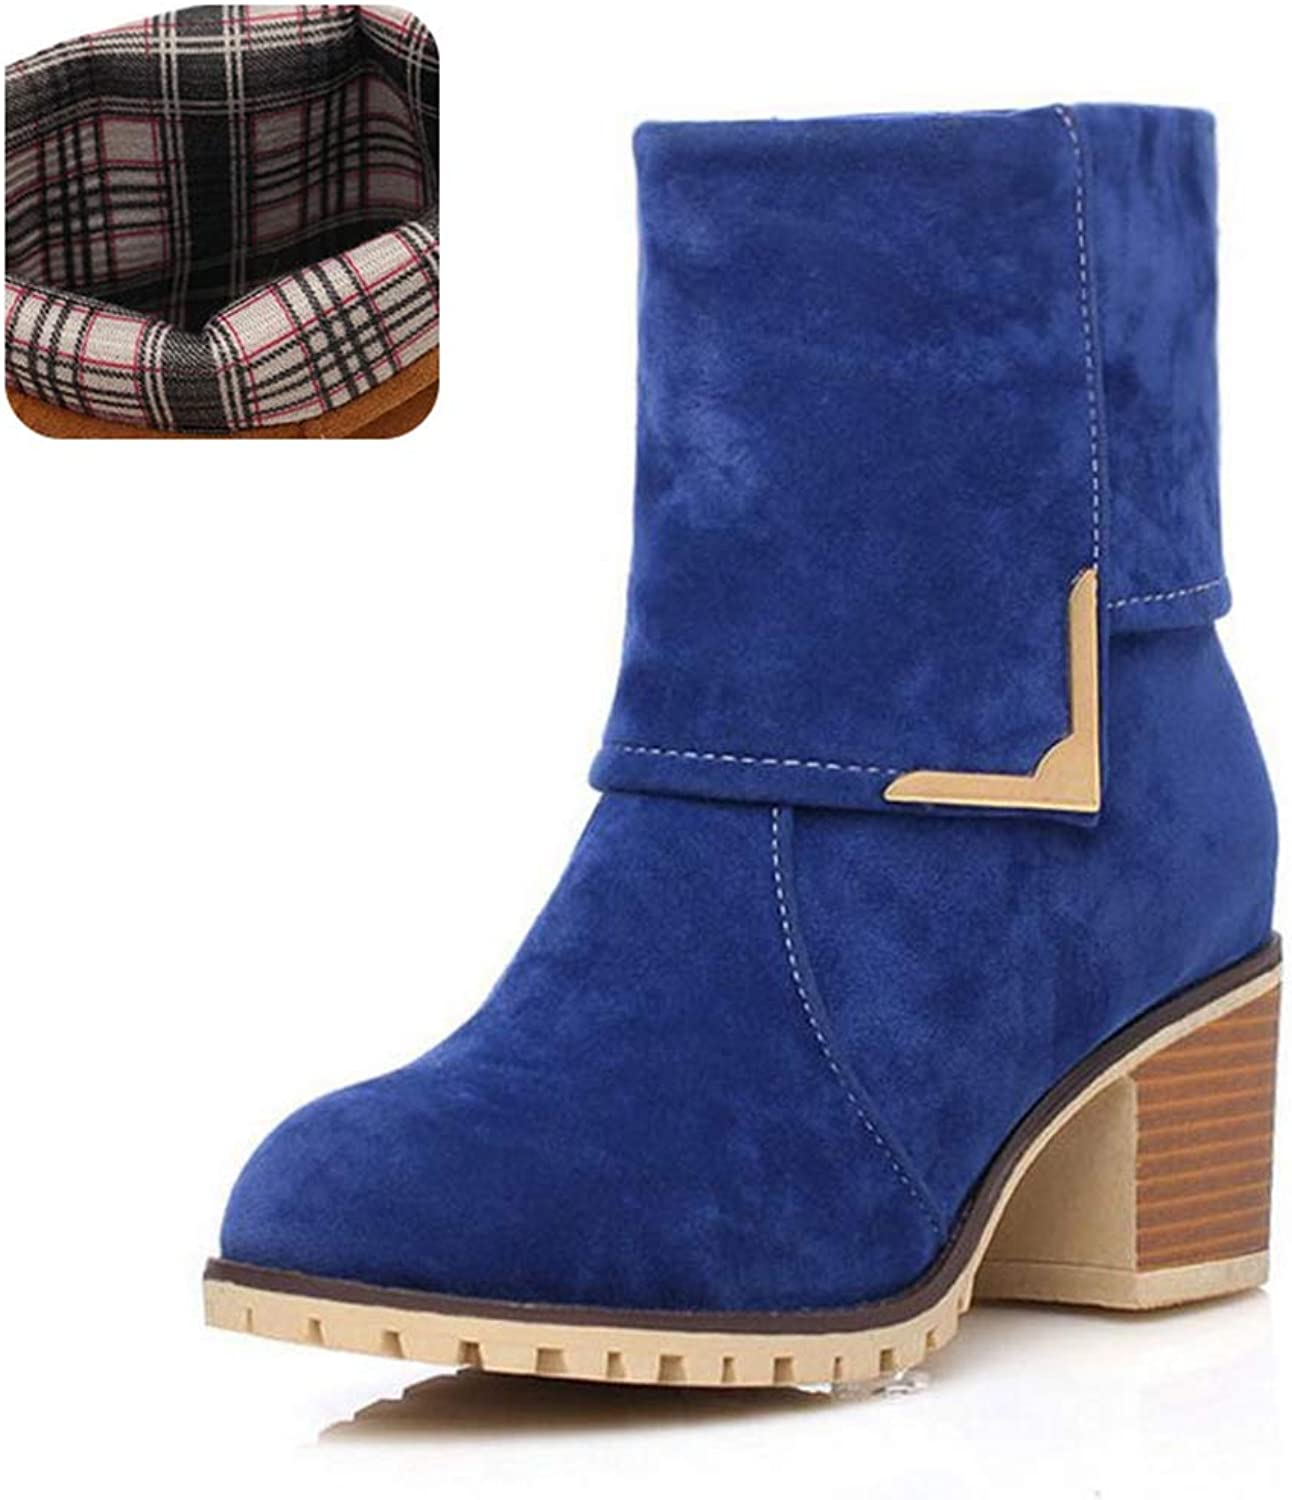 GIY Women's Square High Heels Ankle Boots Slip On Round Toe Warm Plush Winter Chunky Heel Short Boots